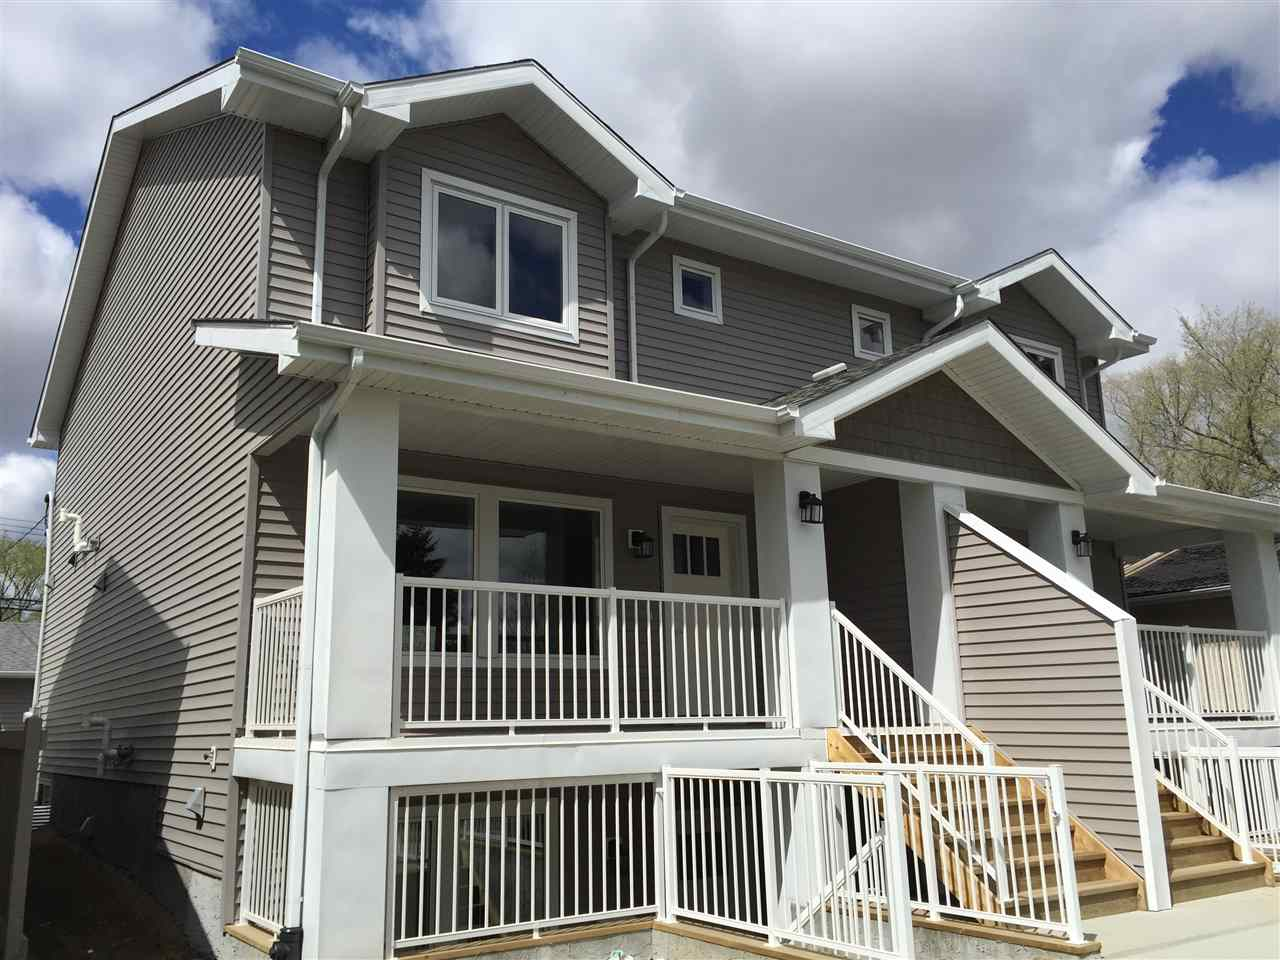 Main Photo: 11842+42B 122 Street in Edmonton: Zone 04 Townhouse for sale : MLS(r) # E4054188